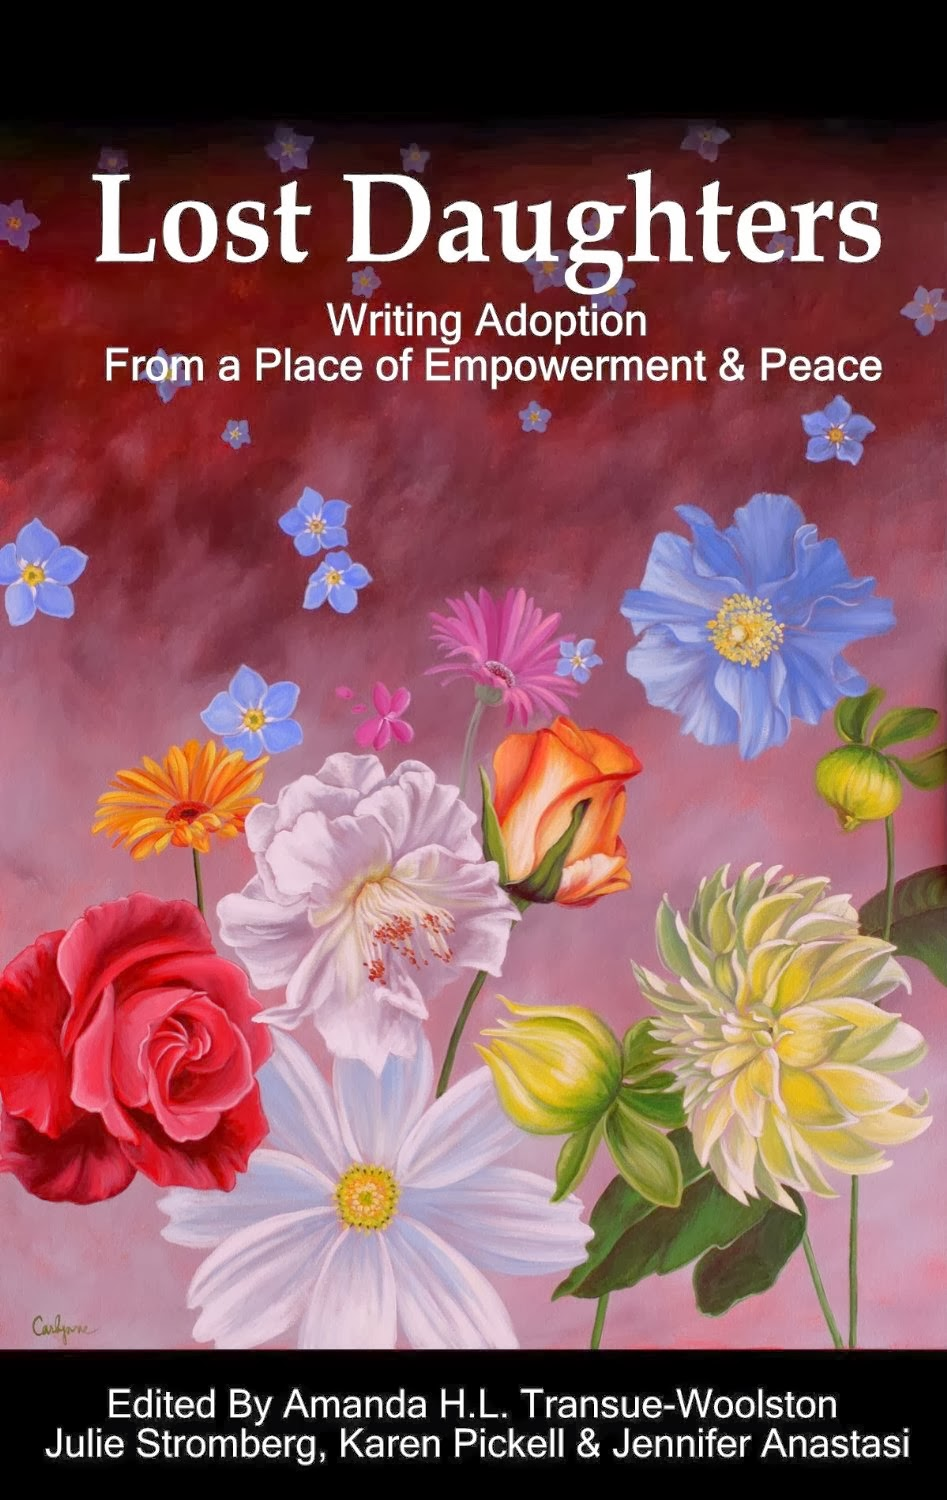 """The more we can question, explore and understand the experience, the more opportunity we will have to shape the future of adoption."" Lost Daughters: Writing Adoption from a Place of Empowerment and Peace."